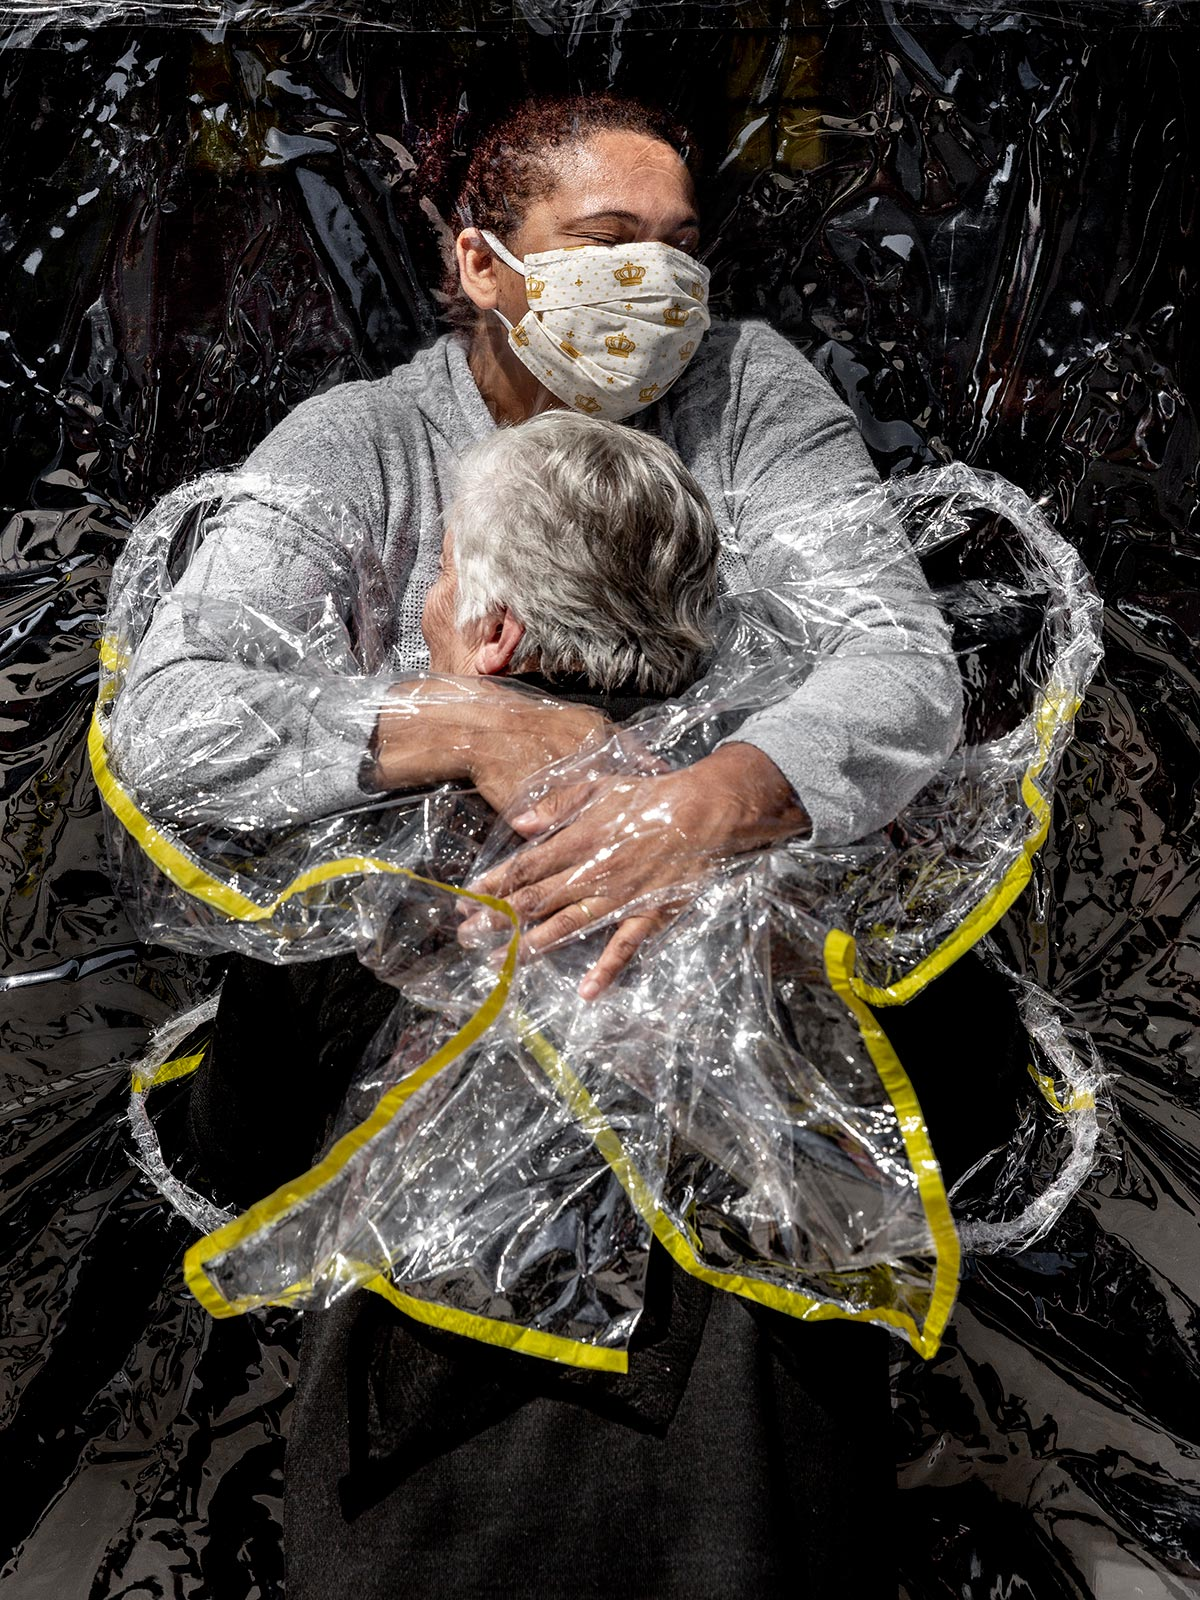 003_World-Press-Photo-of-the-Year-Nominee_Mads-Nissen_Politiken_Mads-Nissen_Politiken_Panos-Pictures